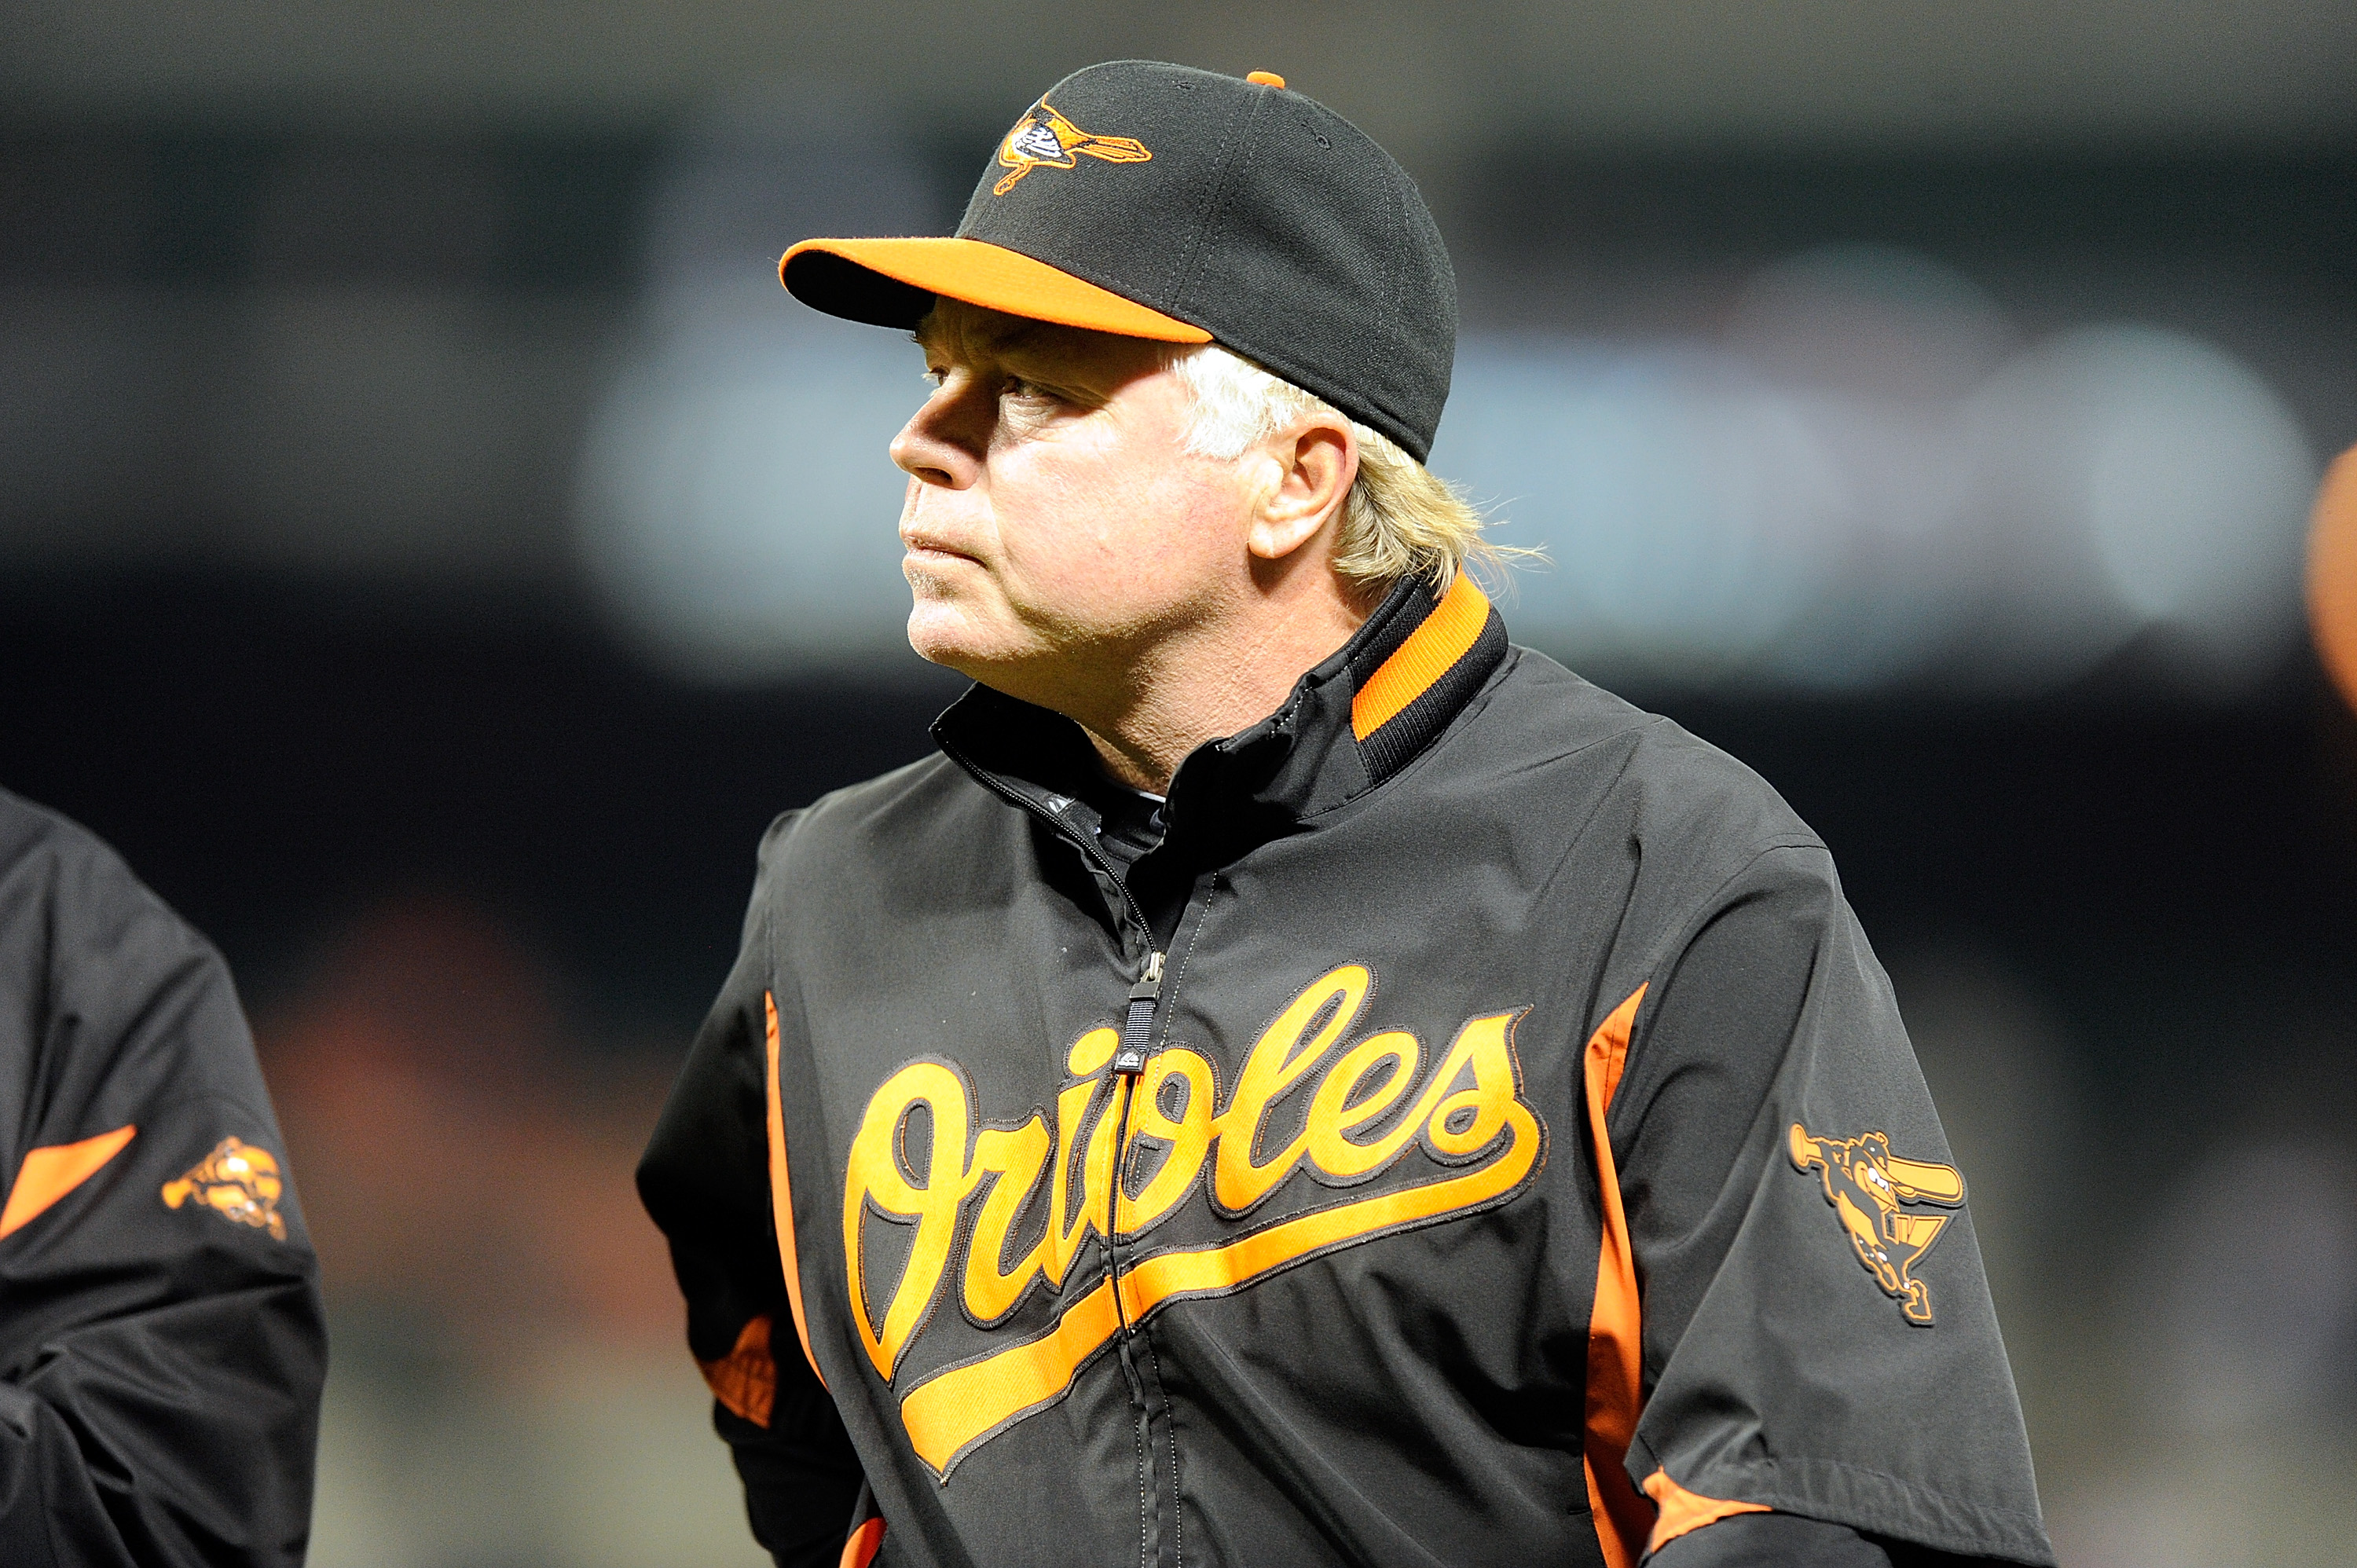 BALTIMORE, MD - APRIL 18:  Manager Buck Showalter of the Baltimore Orioles walks to the dugout during the game against the Minnesota Twins at Oriole Park at Camden Yards on April 18, 2011 in Baltimore, Maryland.  (Photo by Greg Fiume/Getty Images)